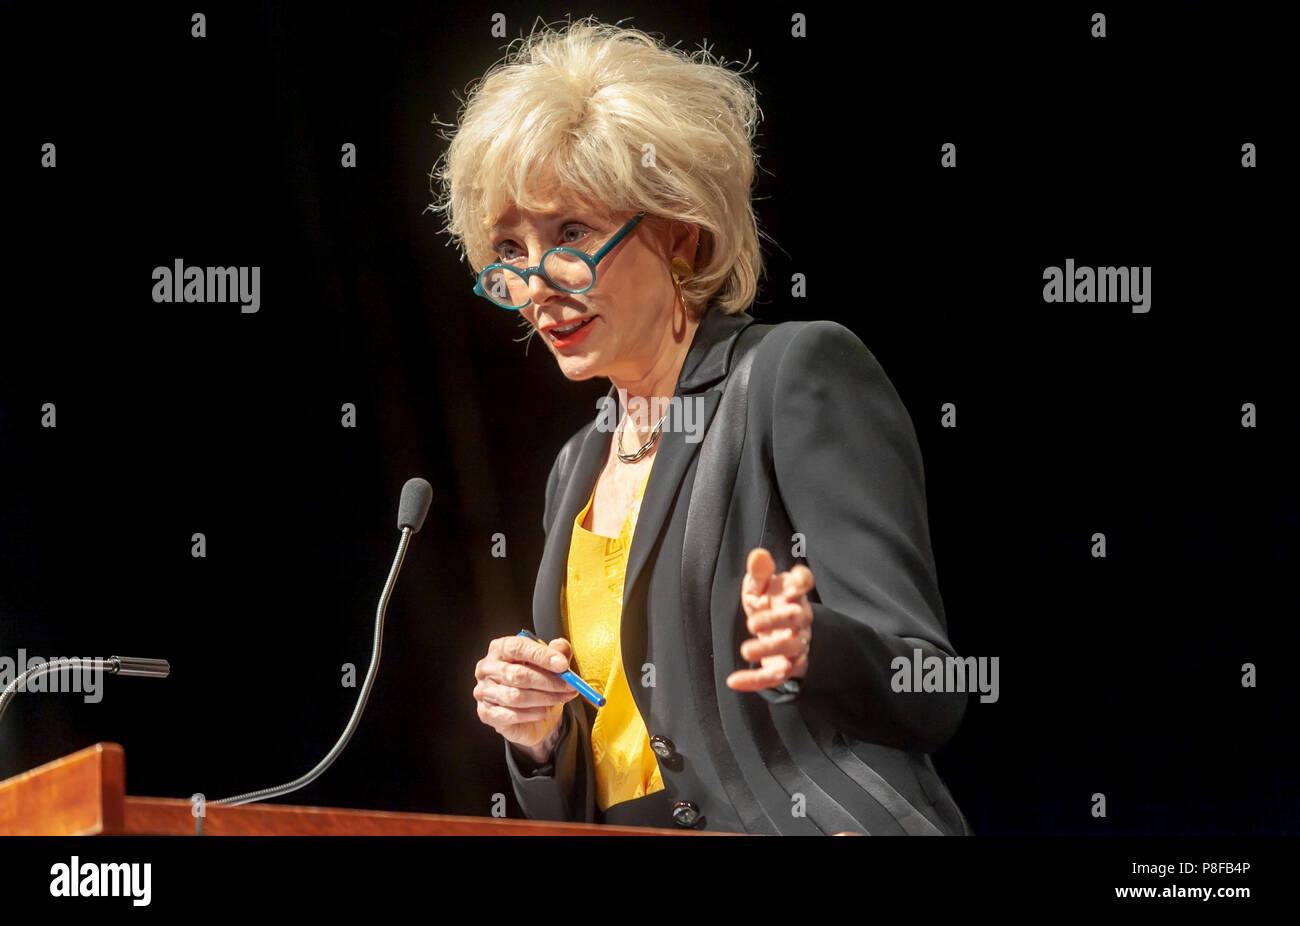 Leslie Stahl from 60 Minutes Television Show standing at a podium and giving a lecture. - Stock Image